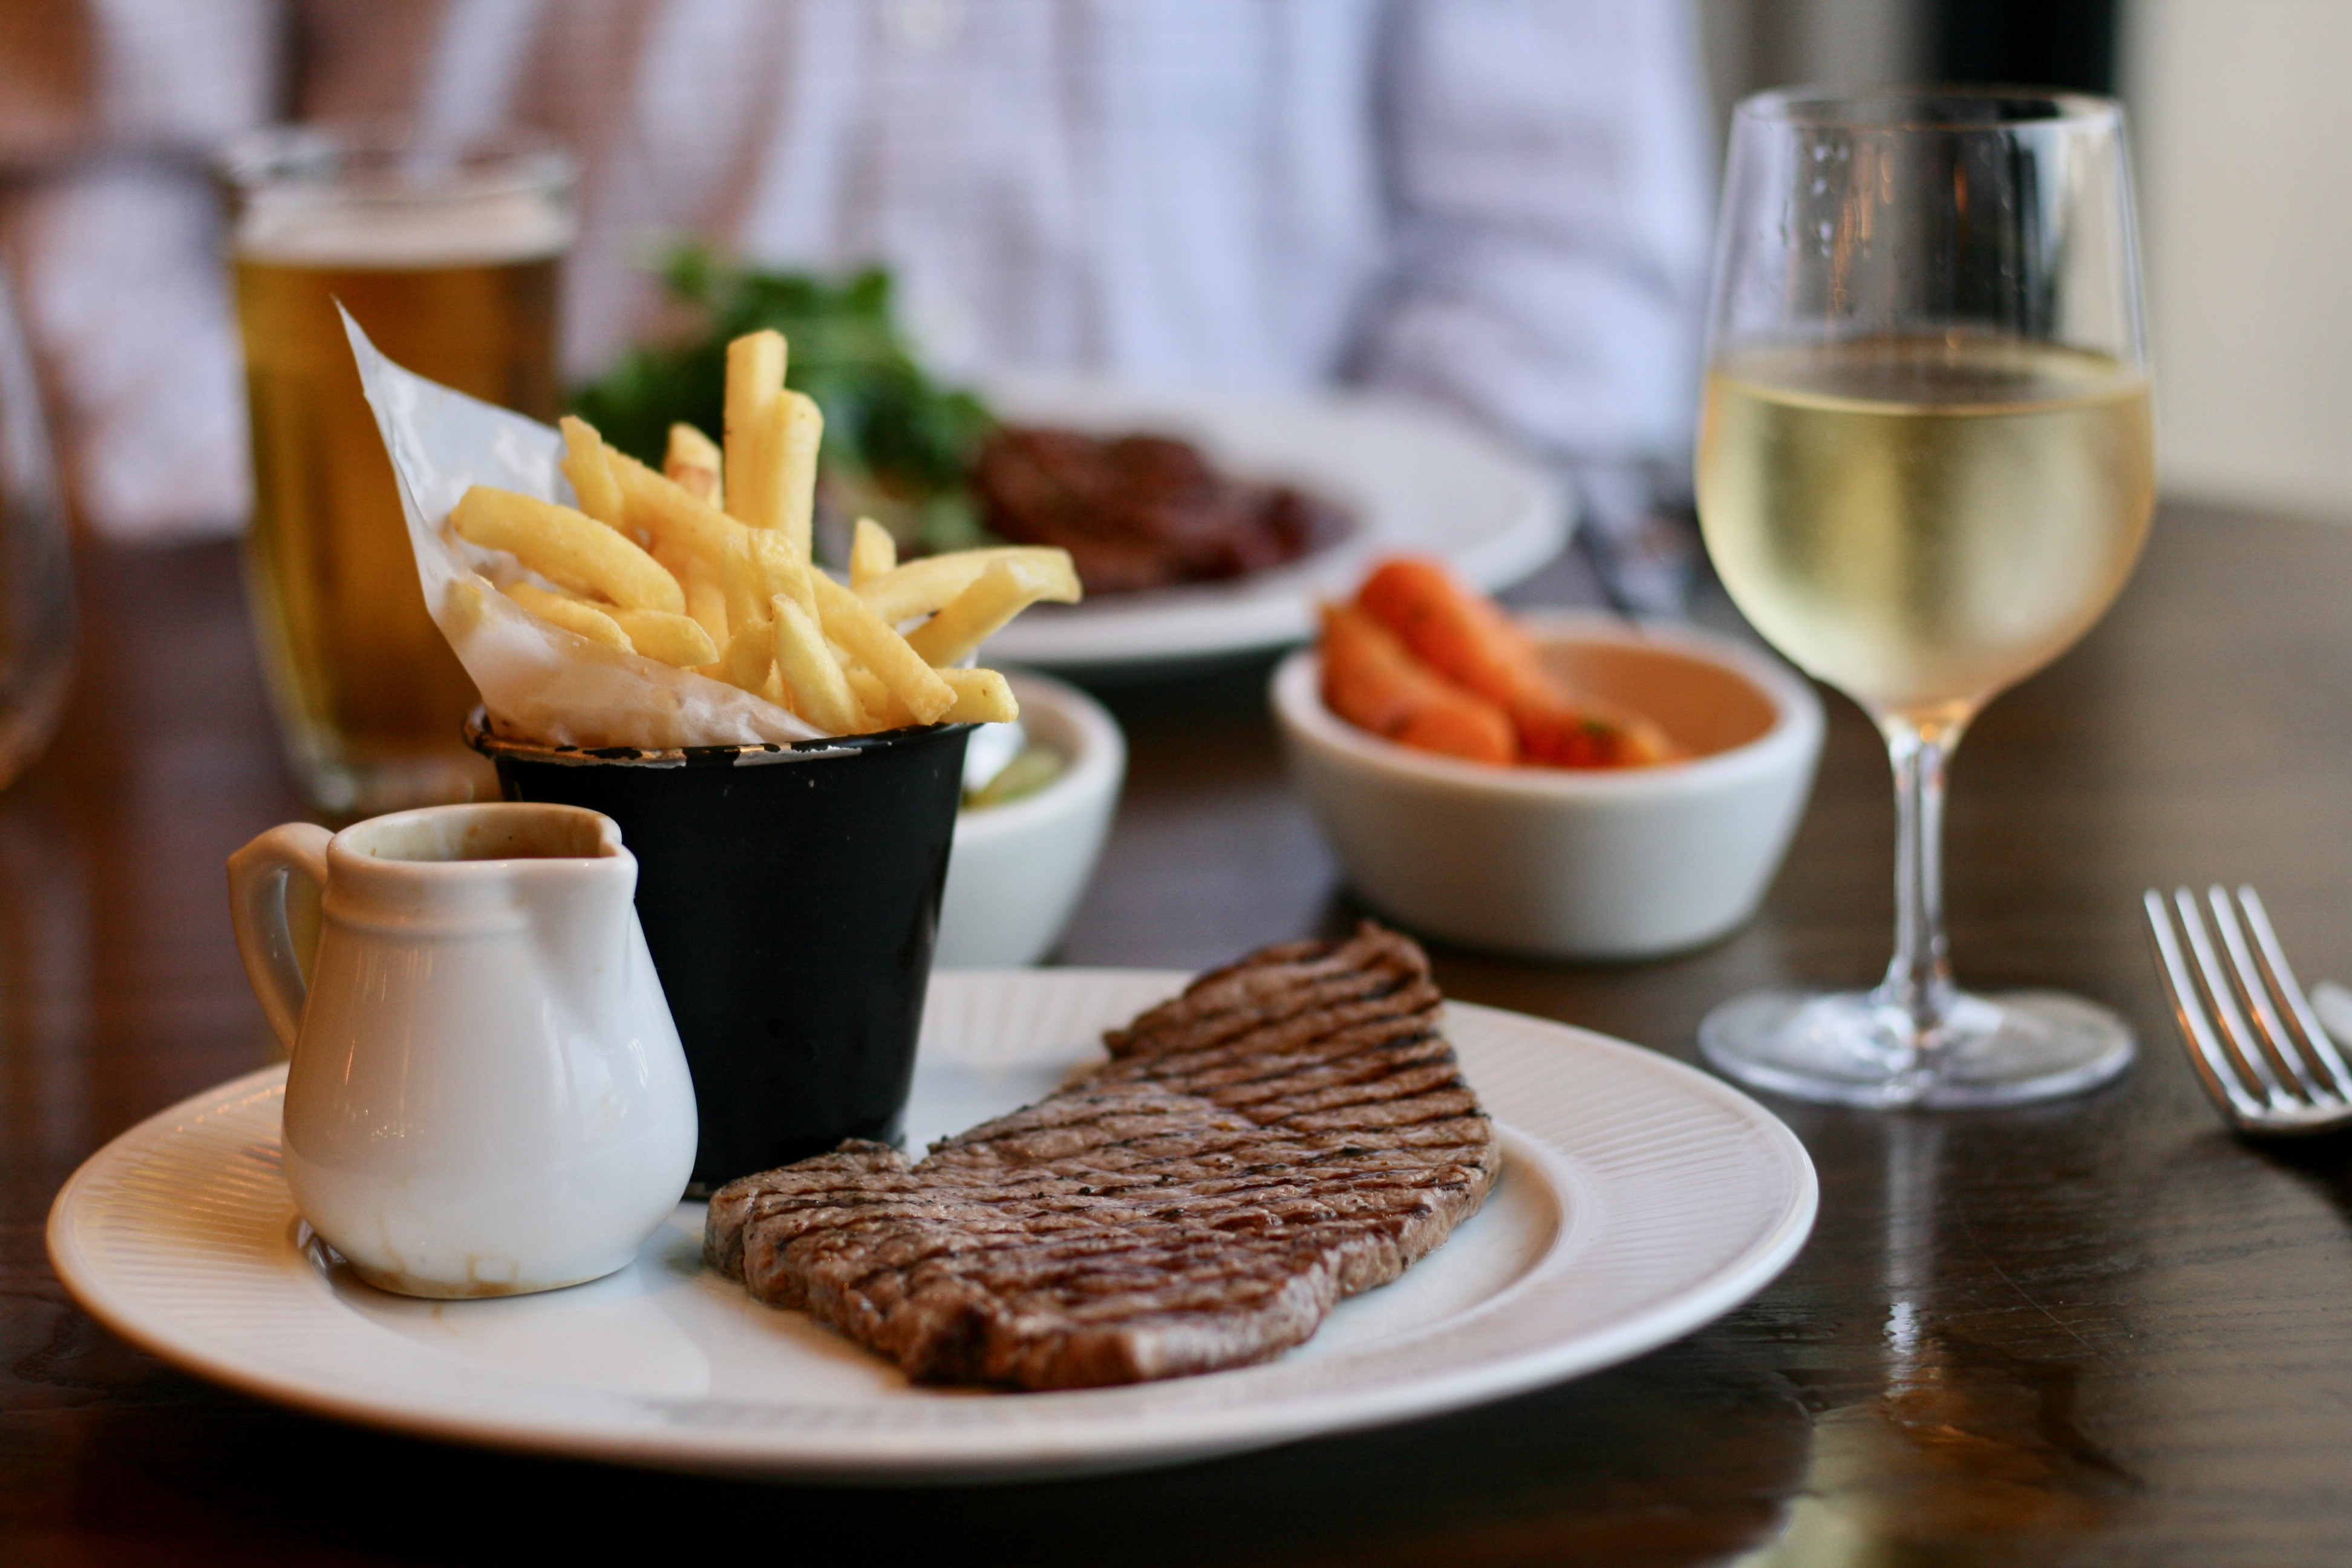 Review of Cote Brasserie Restaurant in Bournemouth